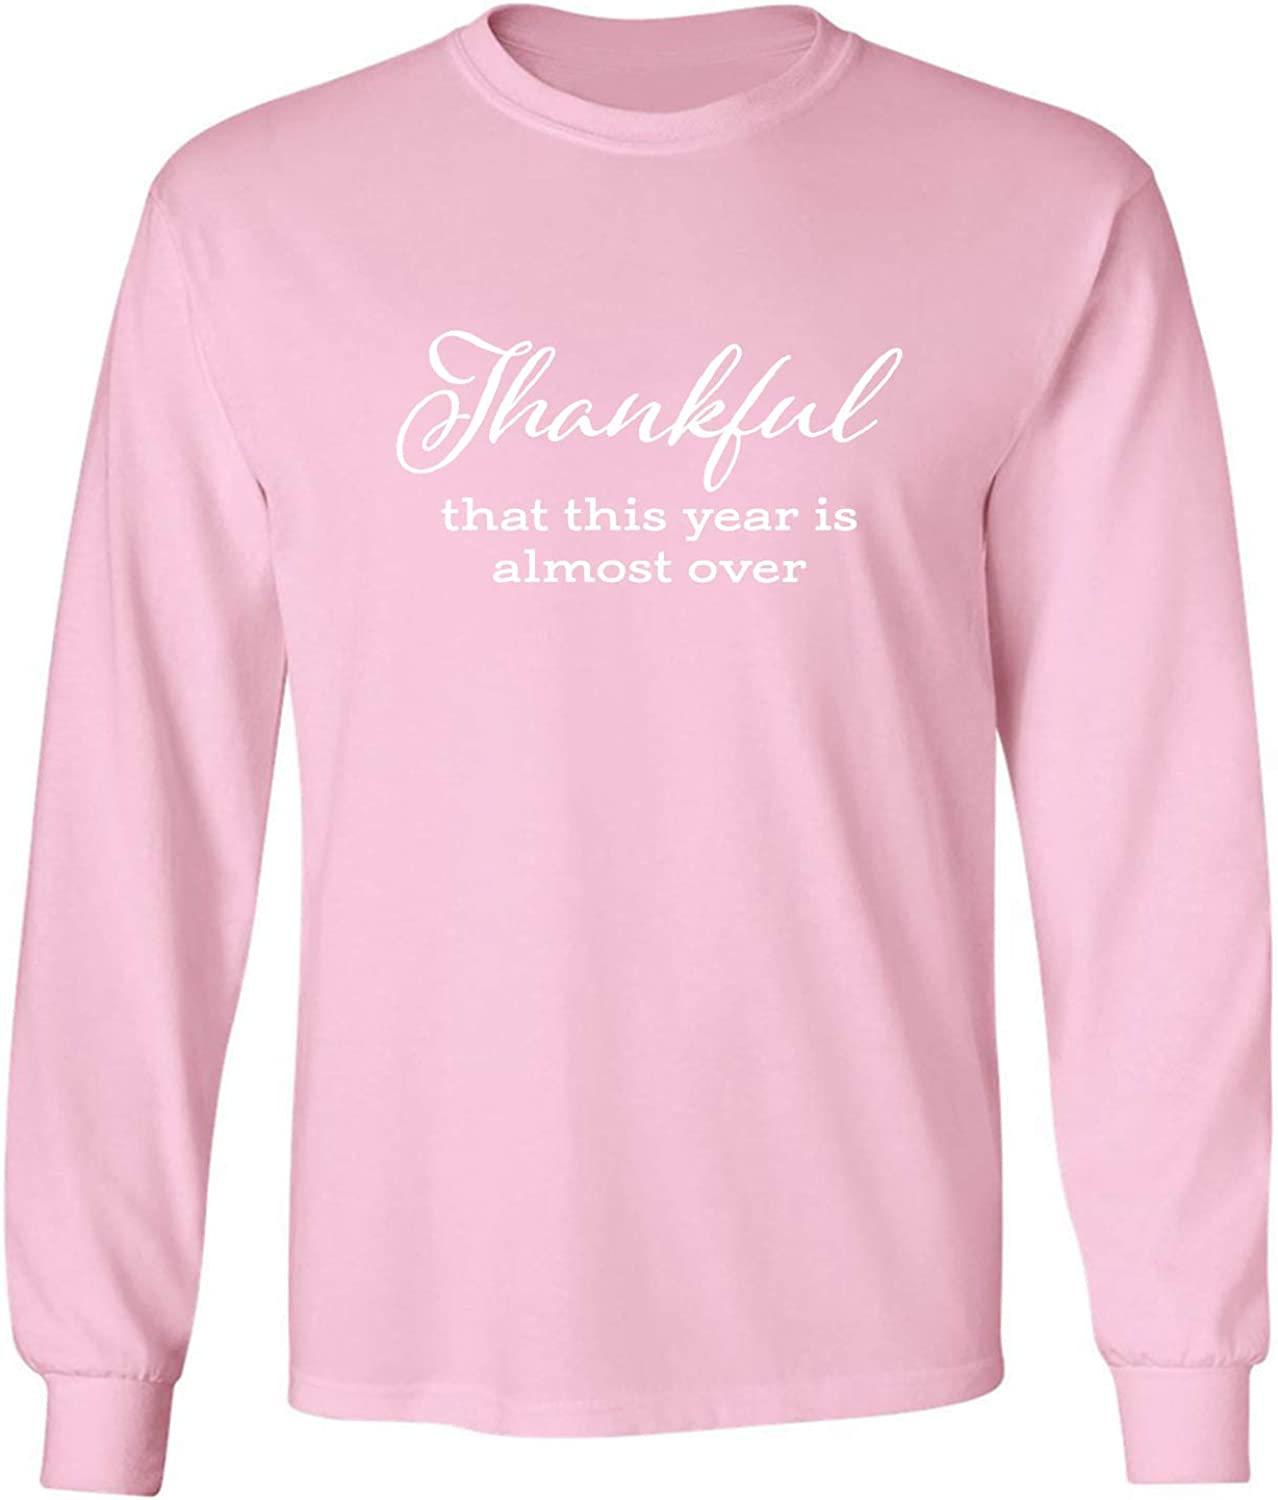 Thankful This Year is Almost Over Adult Long Sleeve T-Shirt in Pink - XXXX-Large